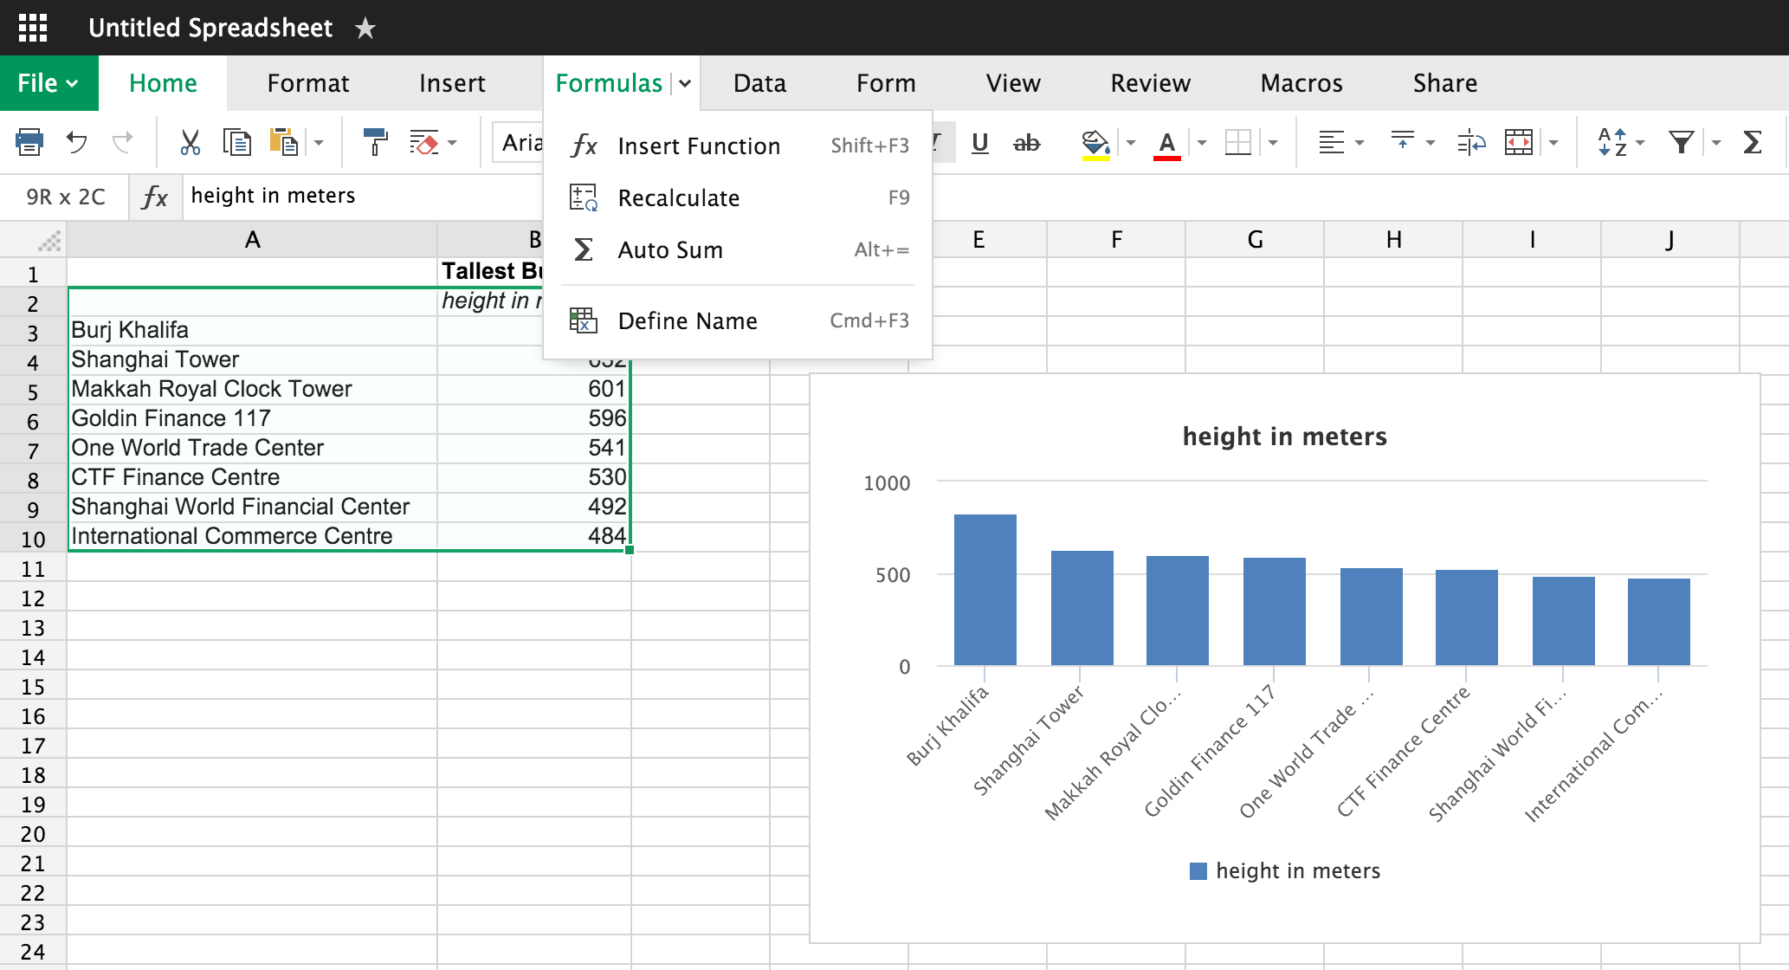 android spreadsheet app with macros android spreadsheet with macros  Android Spreadsheet With Macros Intended For From Visicalc To Google Sheets: The 12 Best Spreadsheet Apps Android Spreadsheet With Macros Printable Spreadshee